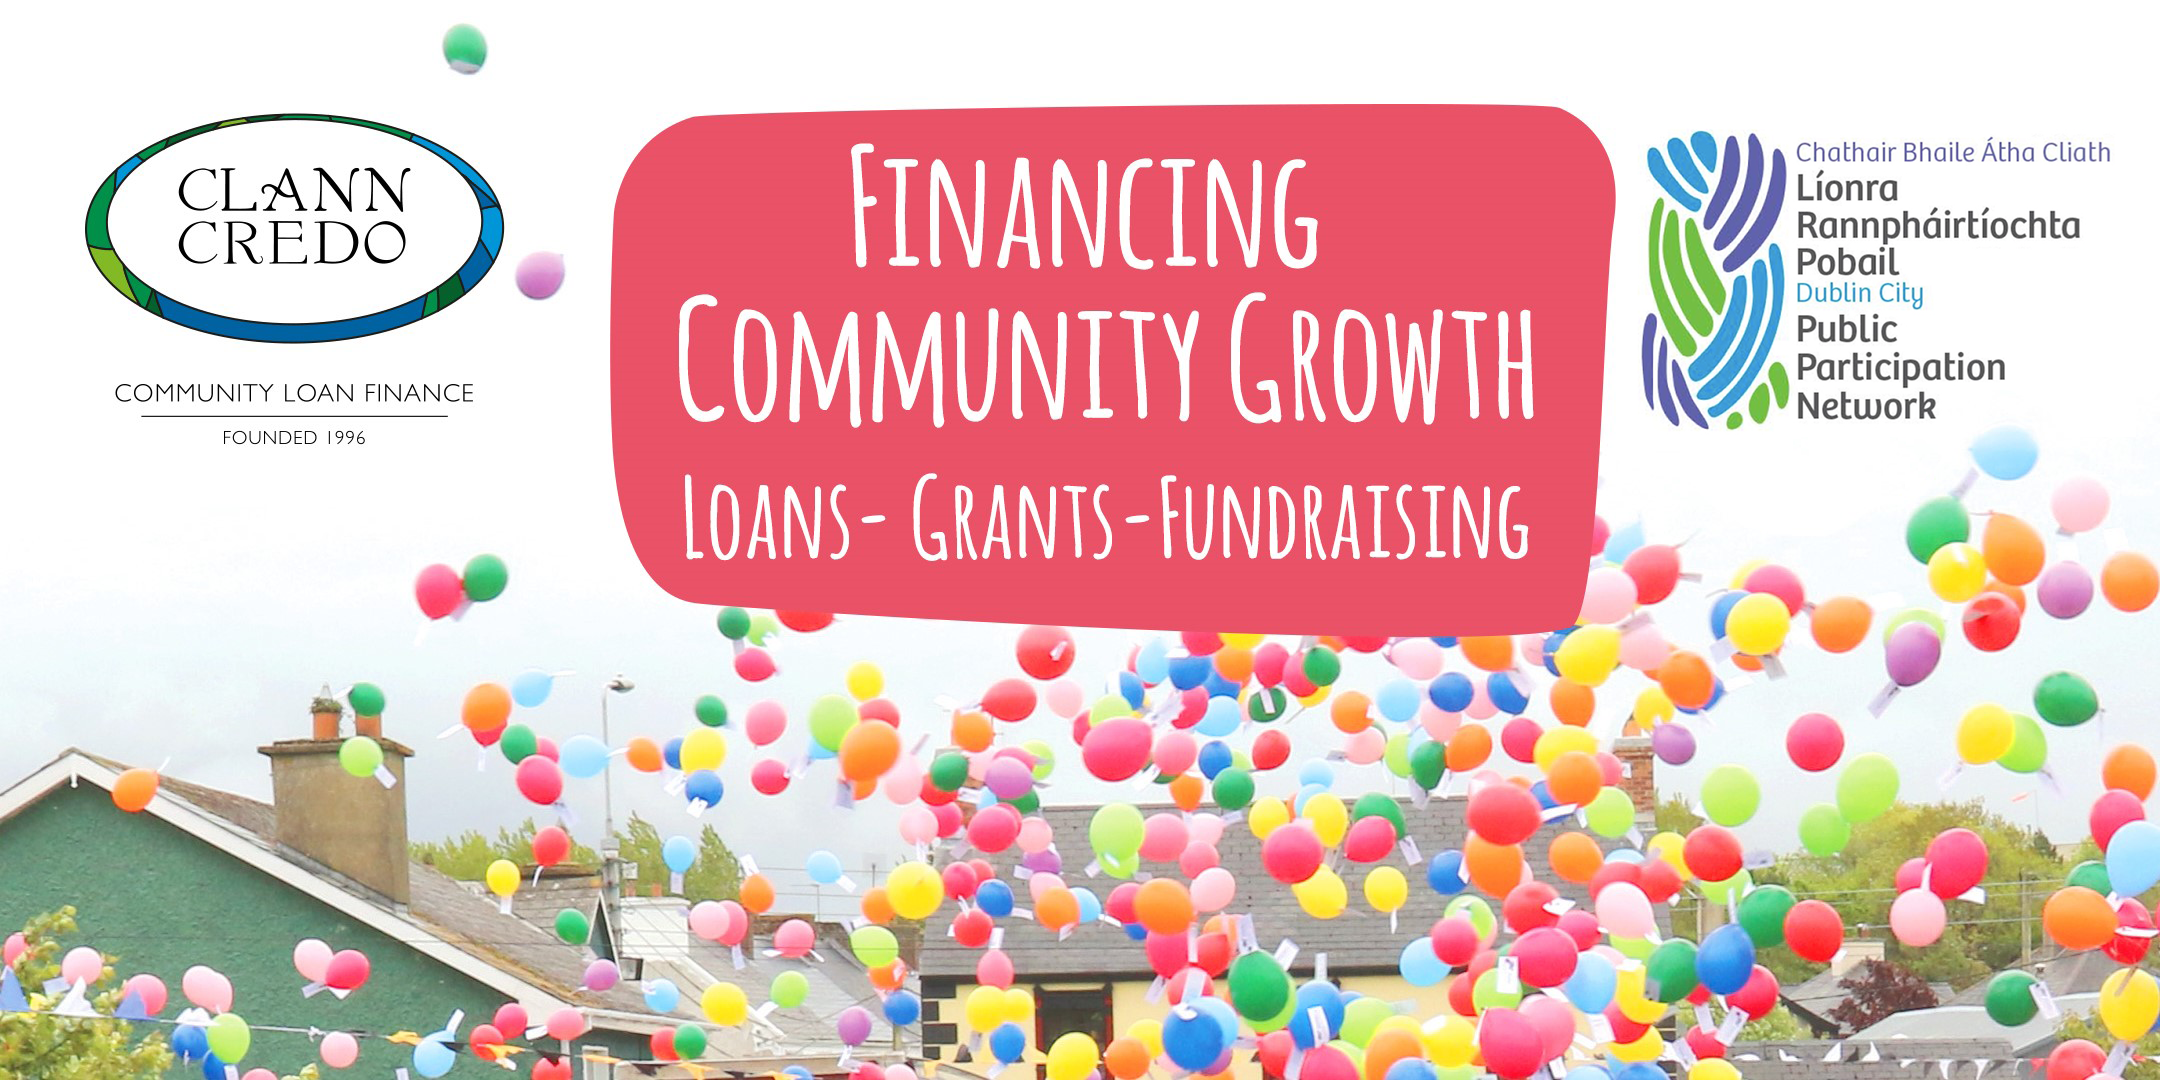 Financing Community Growth-Loans, Grants, Fundraising Dublin City